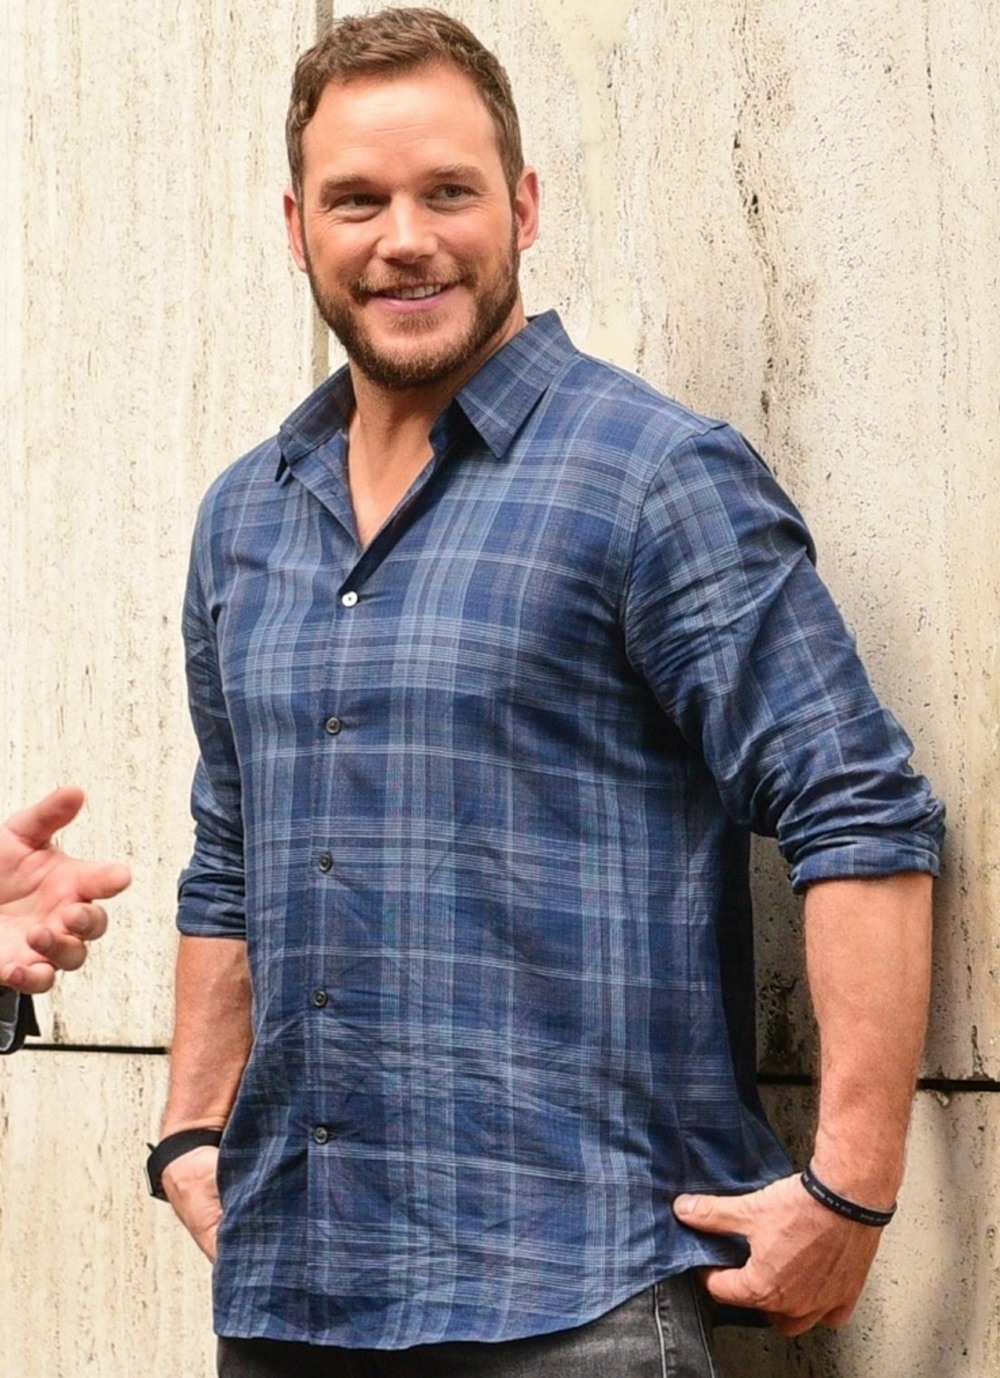 Chris Pratt spends time with his Brazilian fans while promoting 'Avengers: Infinity War'